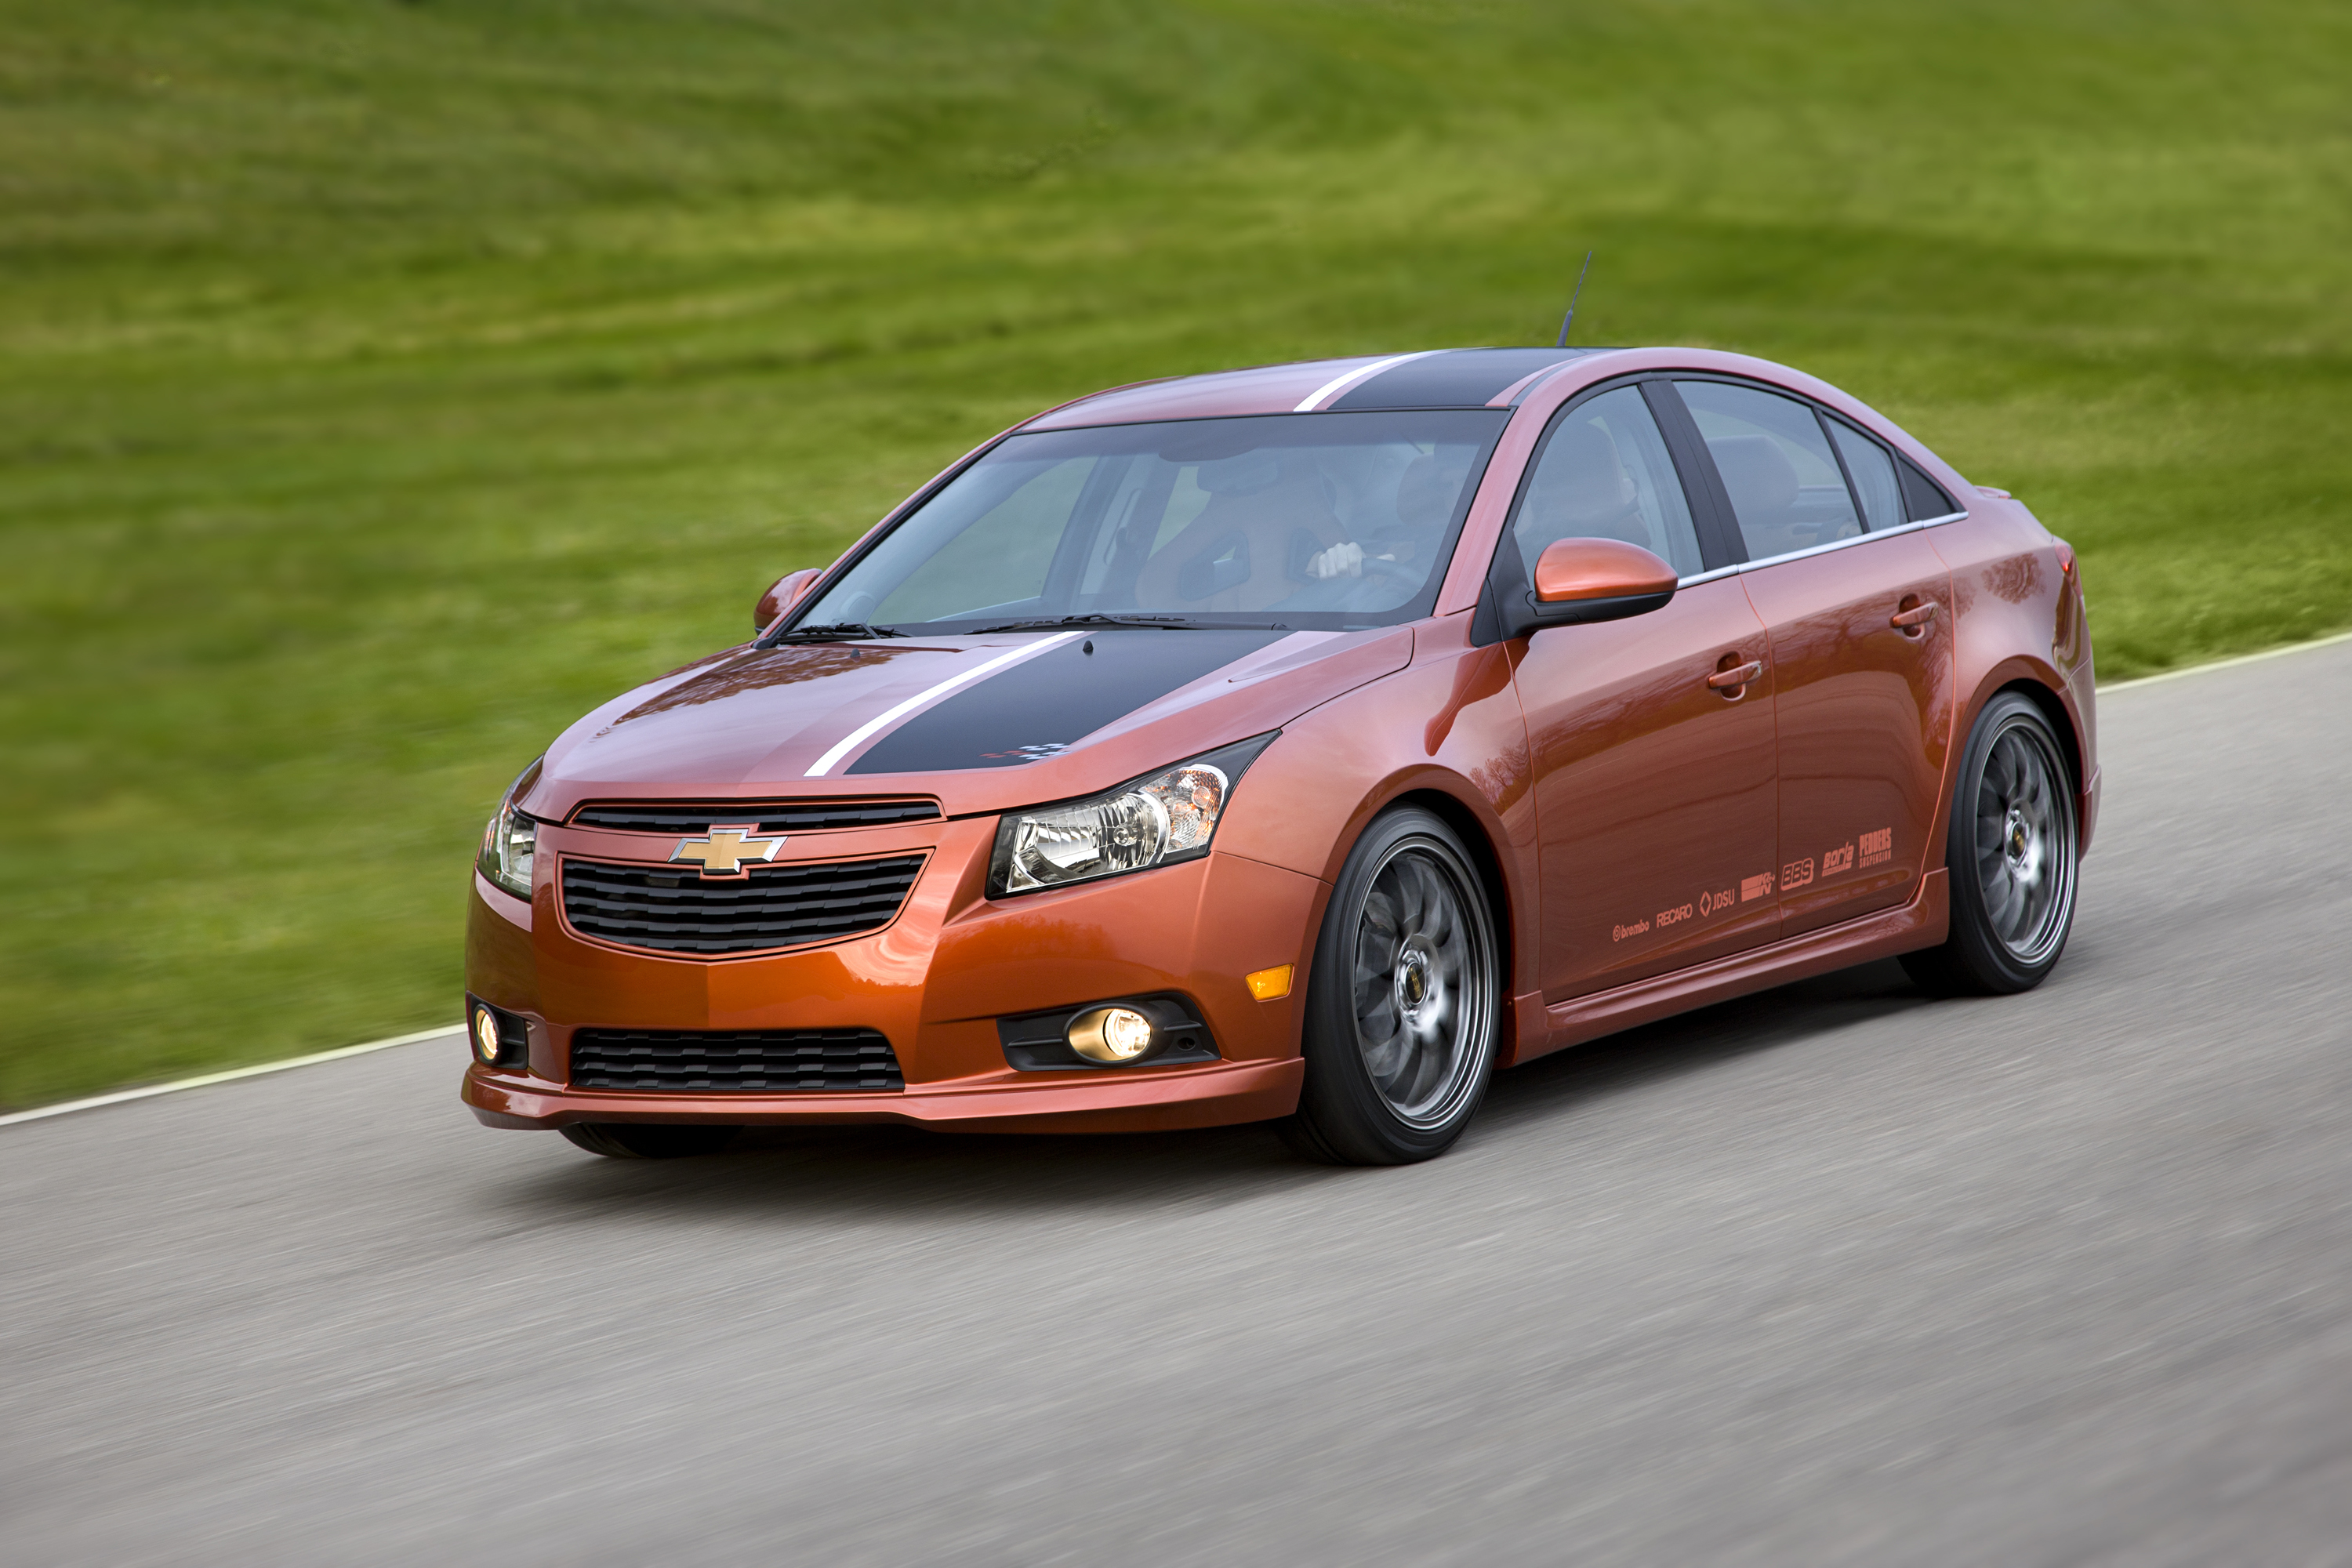 Car Customizing Games >> 2010 Chevy Cruze Z-Spec Concept | Top Speed